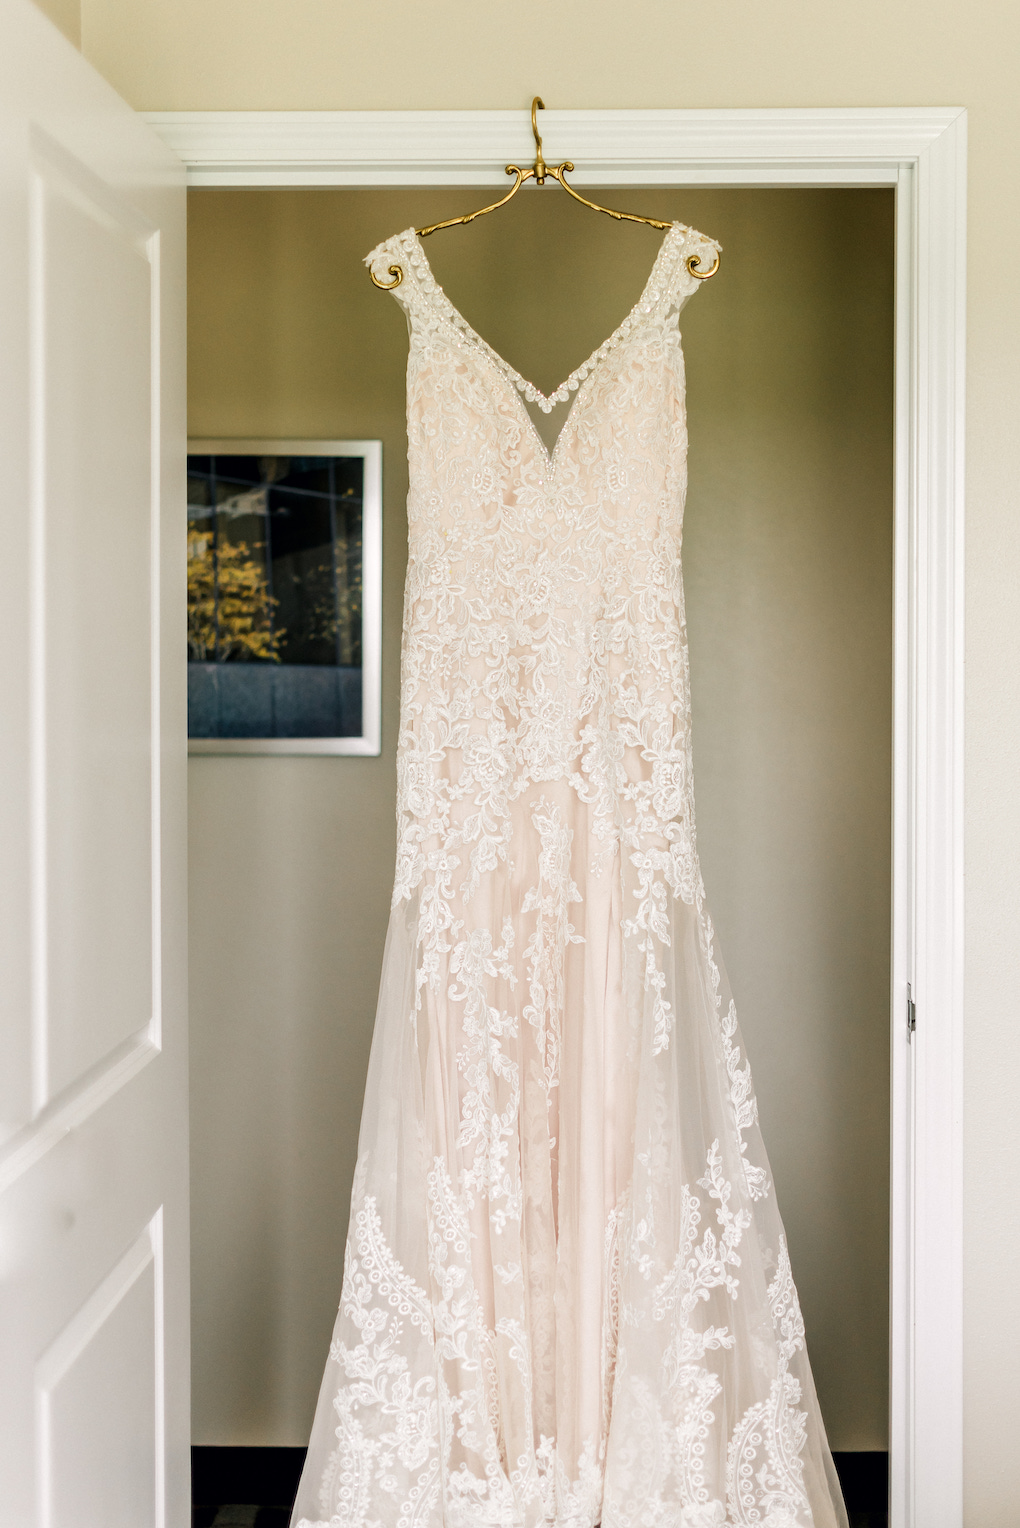 Classic wedding dress with lace: Romantic Delicate Summer Wedding in Pittsburgh planned by Exhale Events. See more at exhale-events.com!